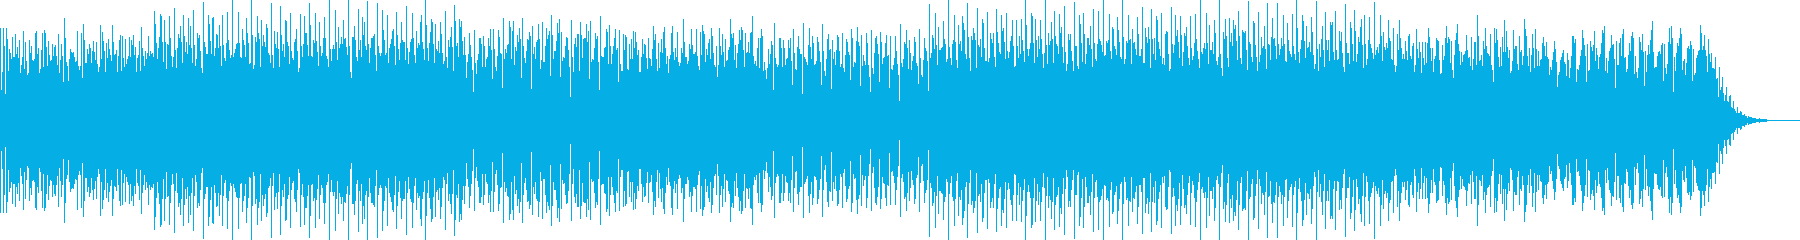 Best BGM for news and news programs's reproduced waveform